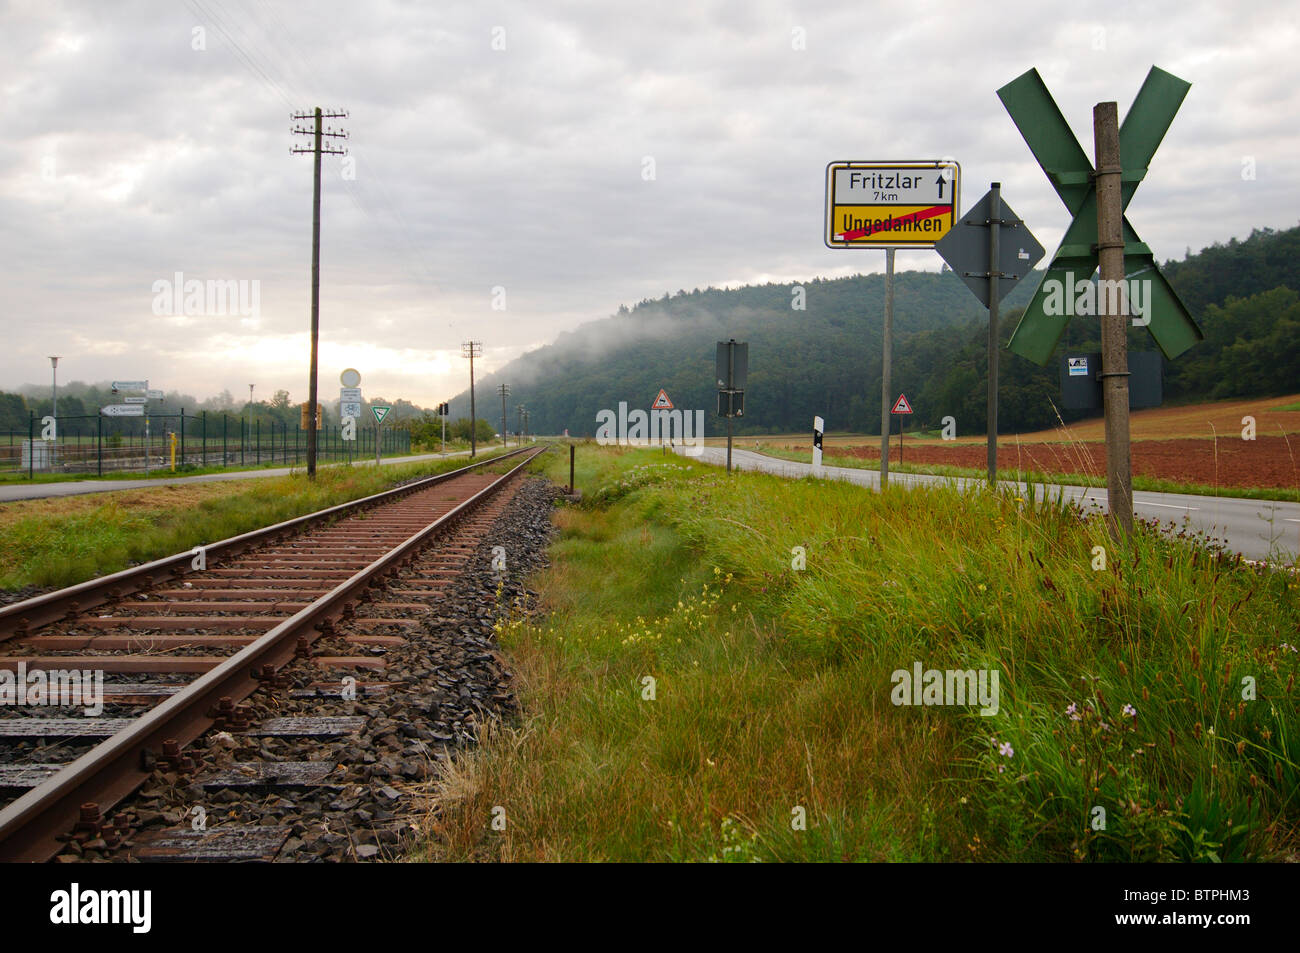 Germany, Hesse, View of railway track and road - Stock Image